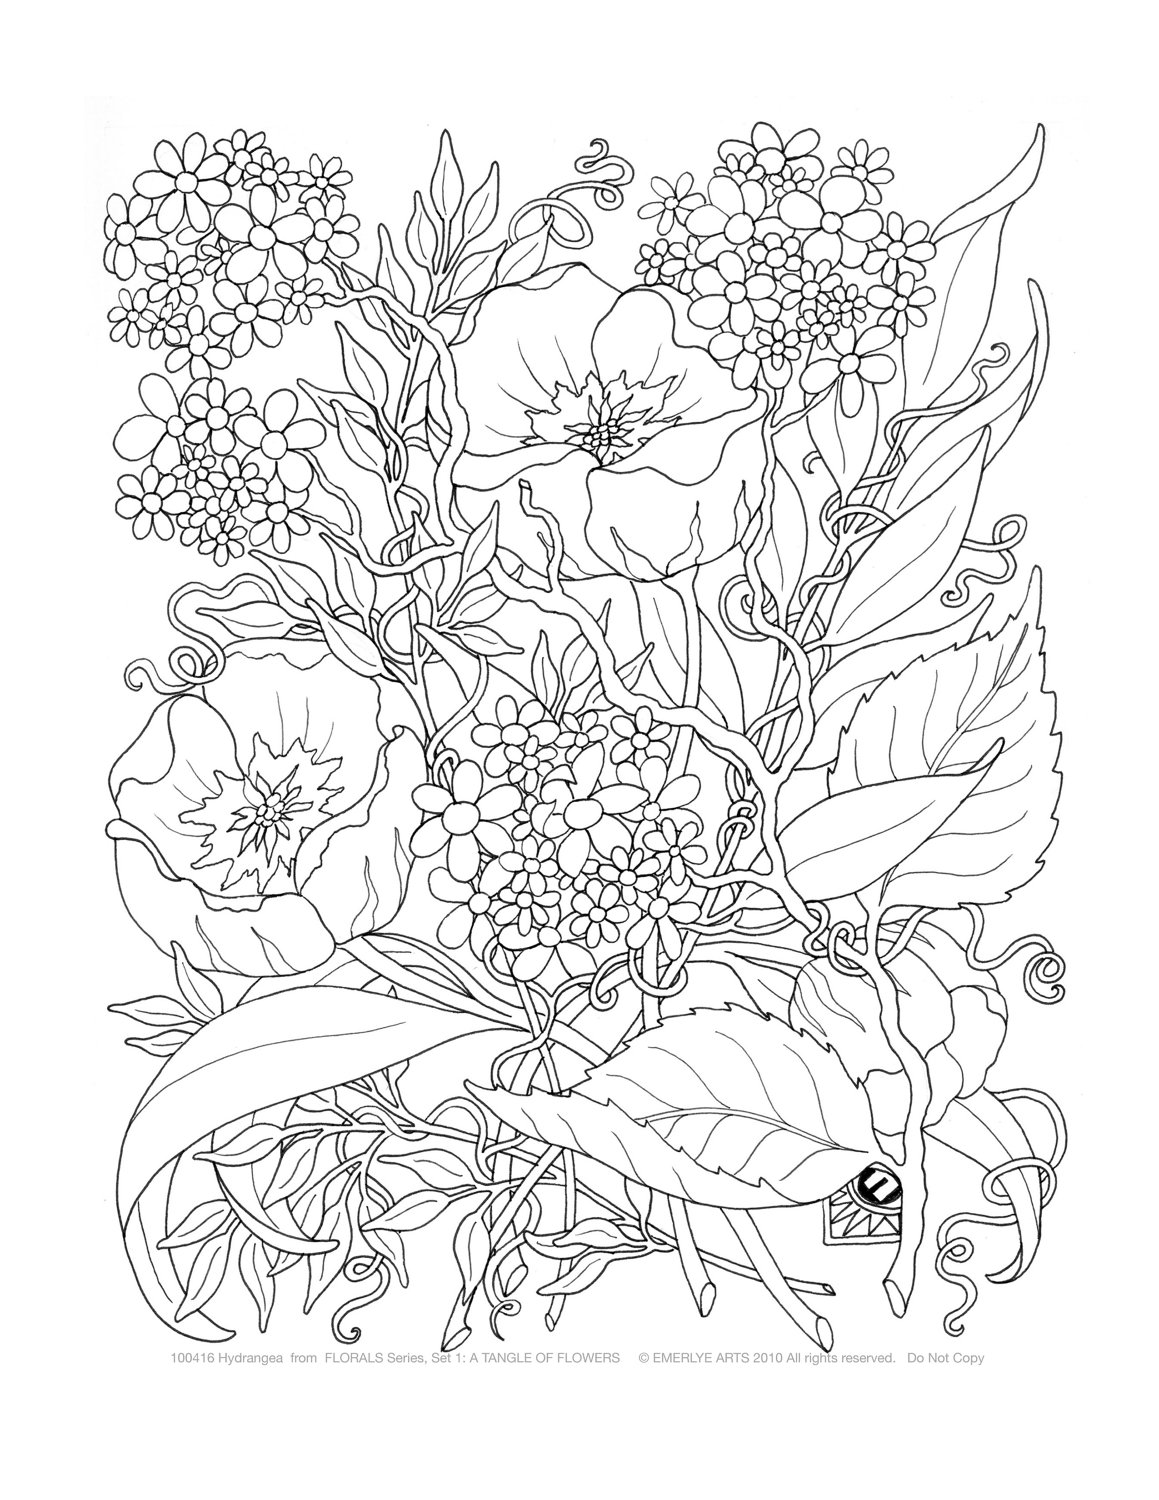 Complex Flower Coloring Pages for Adults